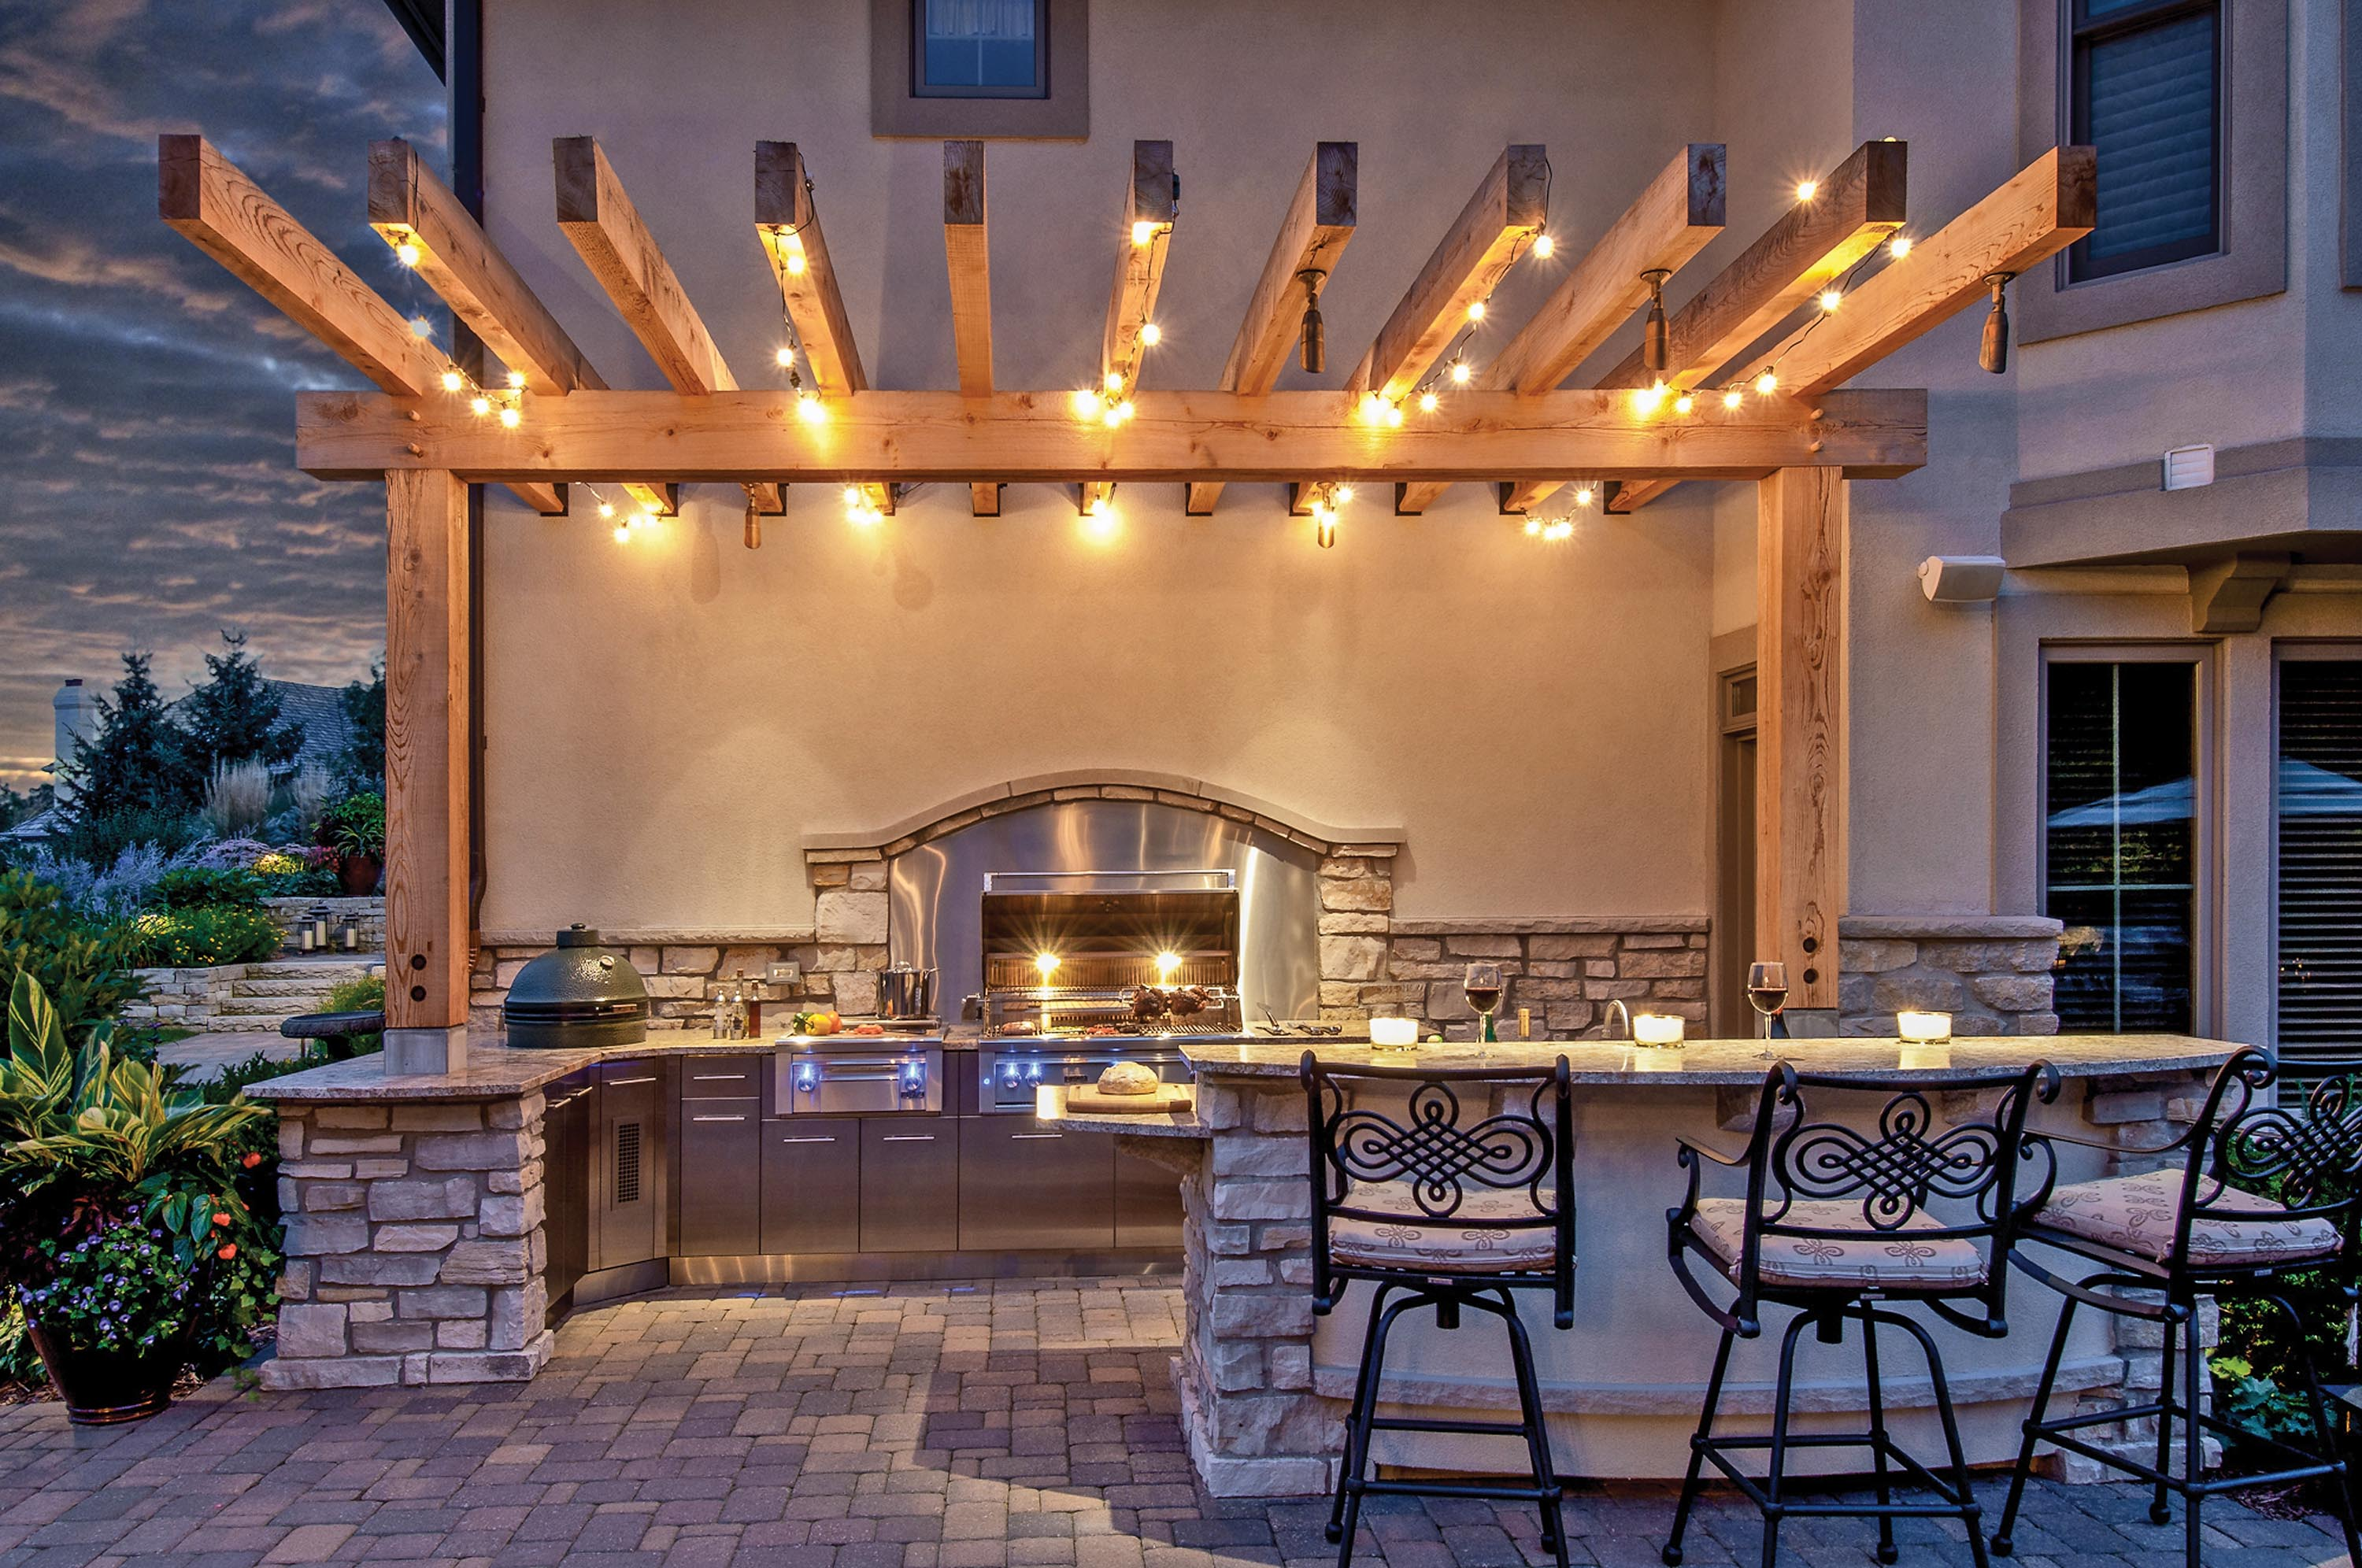 Danver Outdoor Kitchens and Brown Jordan: The Partnership